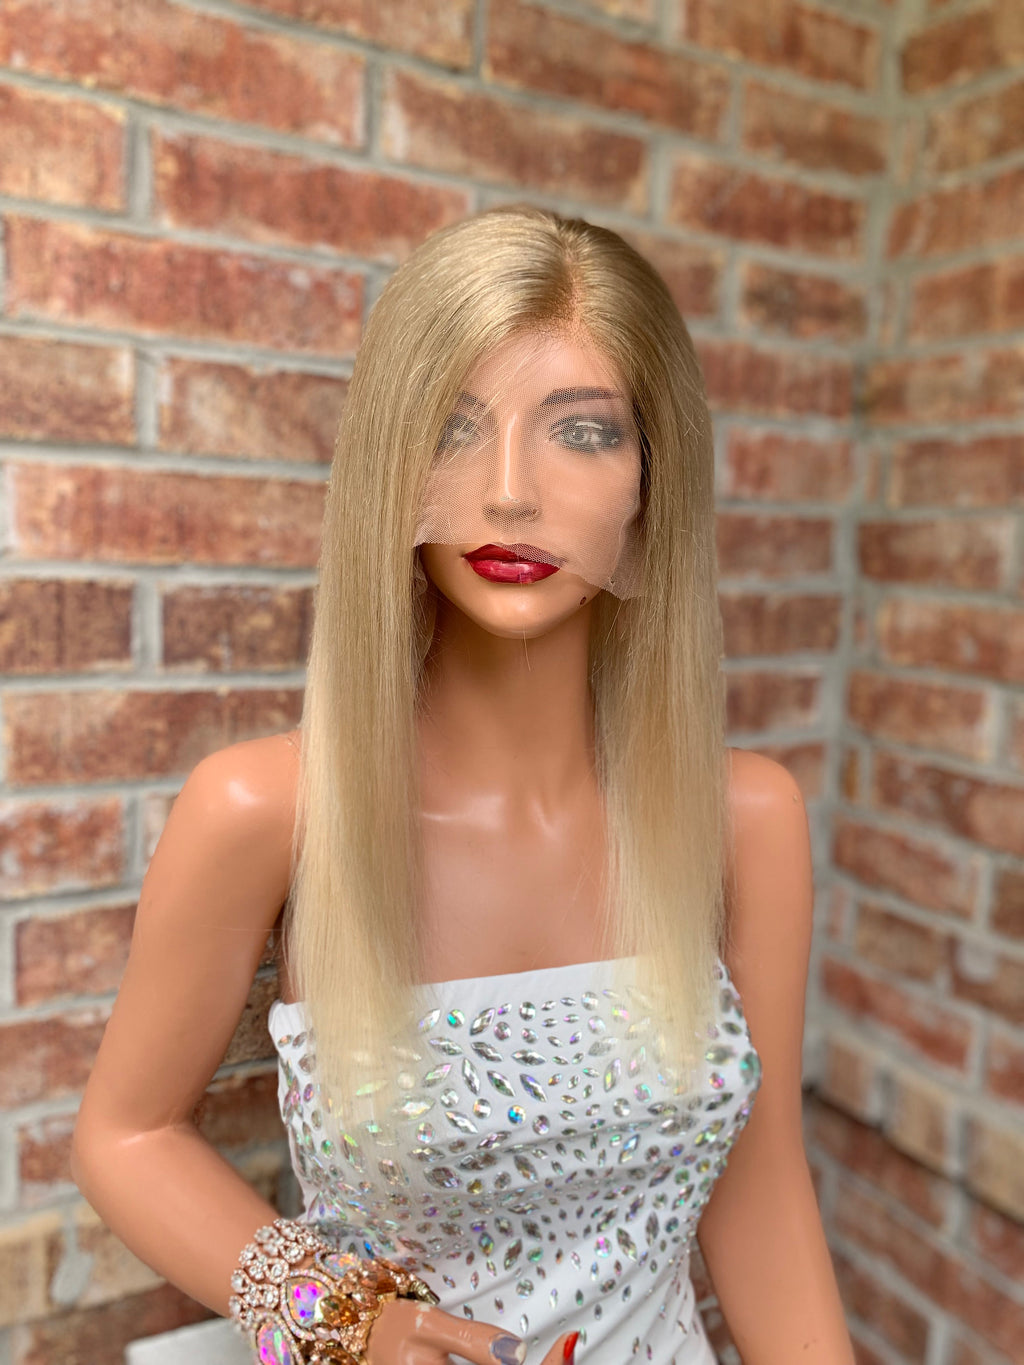 HUMAN HAIR Full lace Wig, Balayage blonde with Natural Color Melt, Straight hair, Made with Virgin hair 14 Inches long